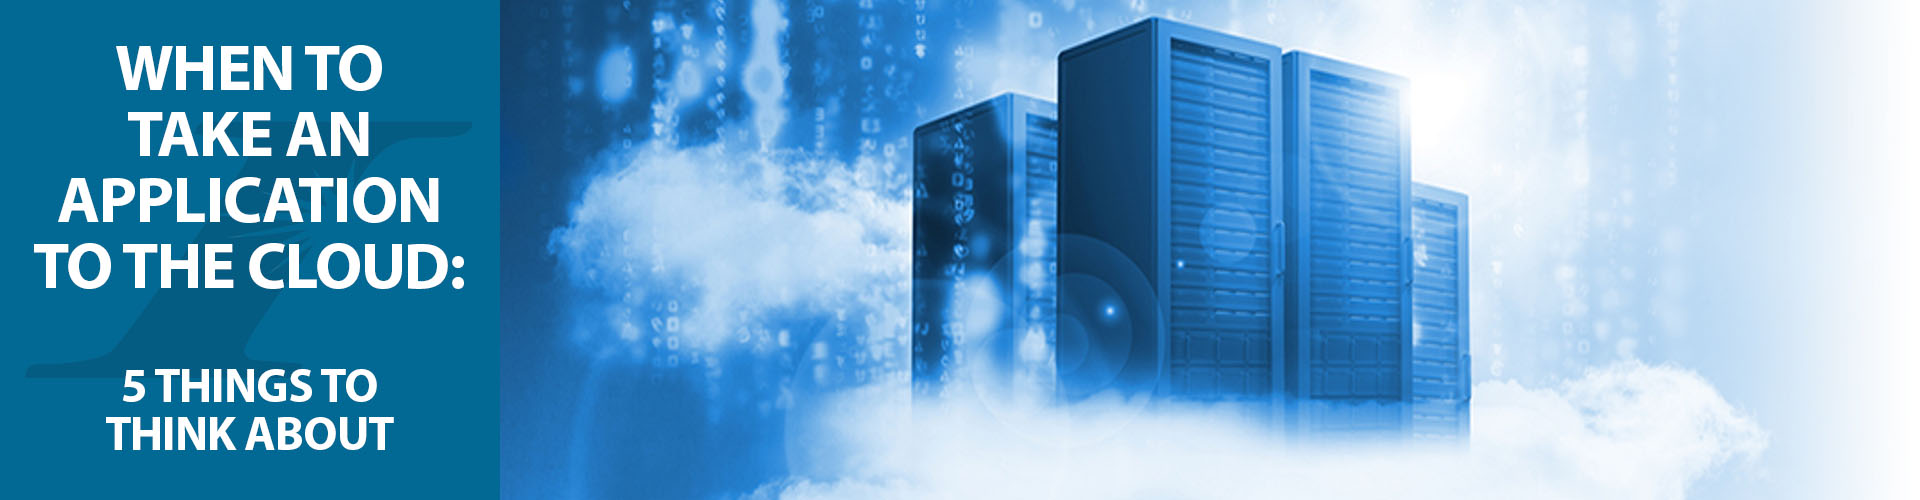 When to Take an Application to the Cloud: 5 Things to Think About